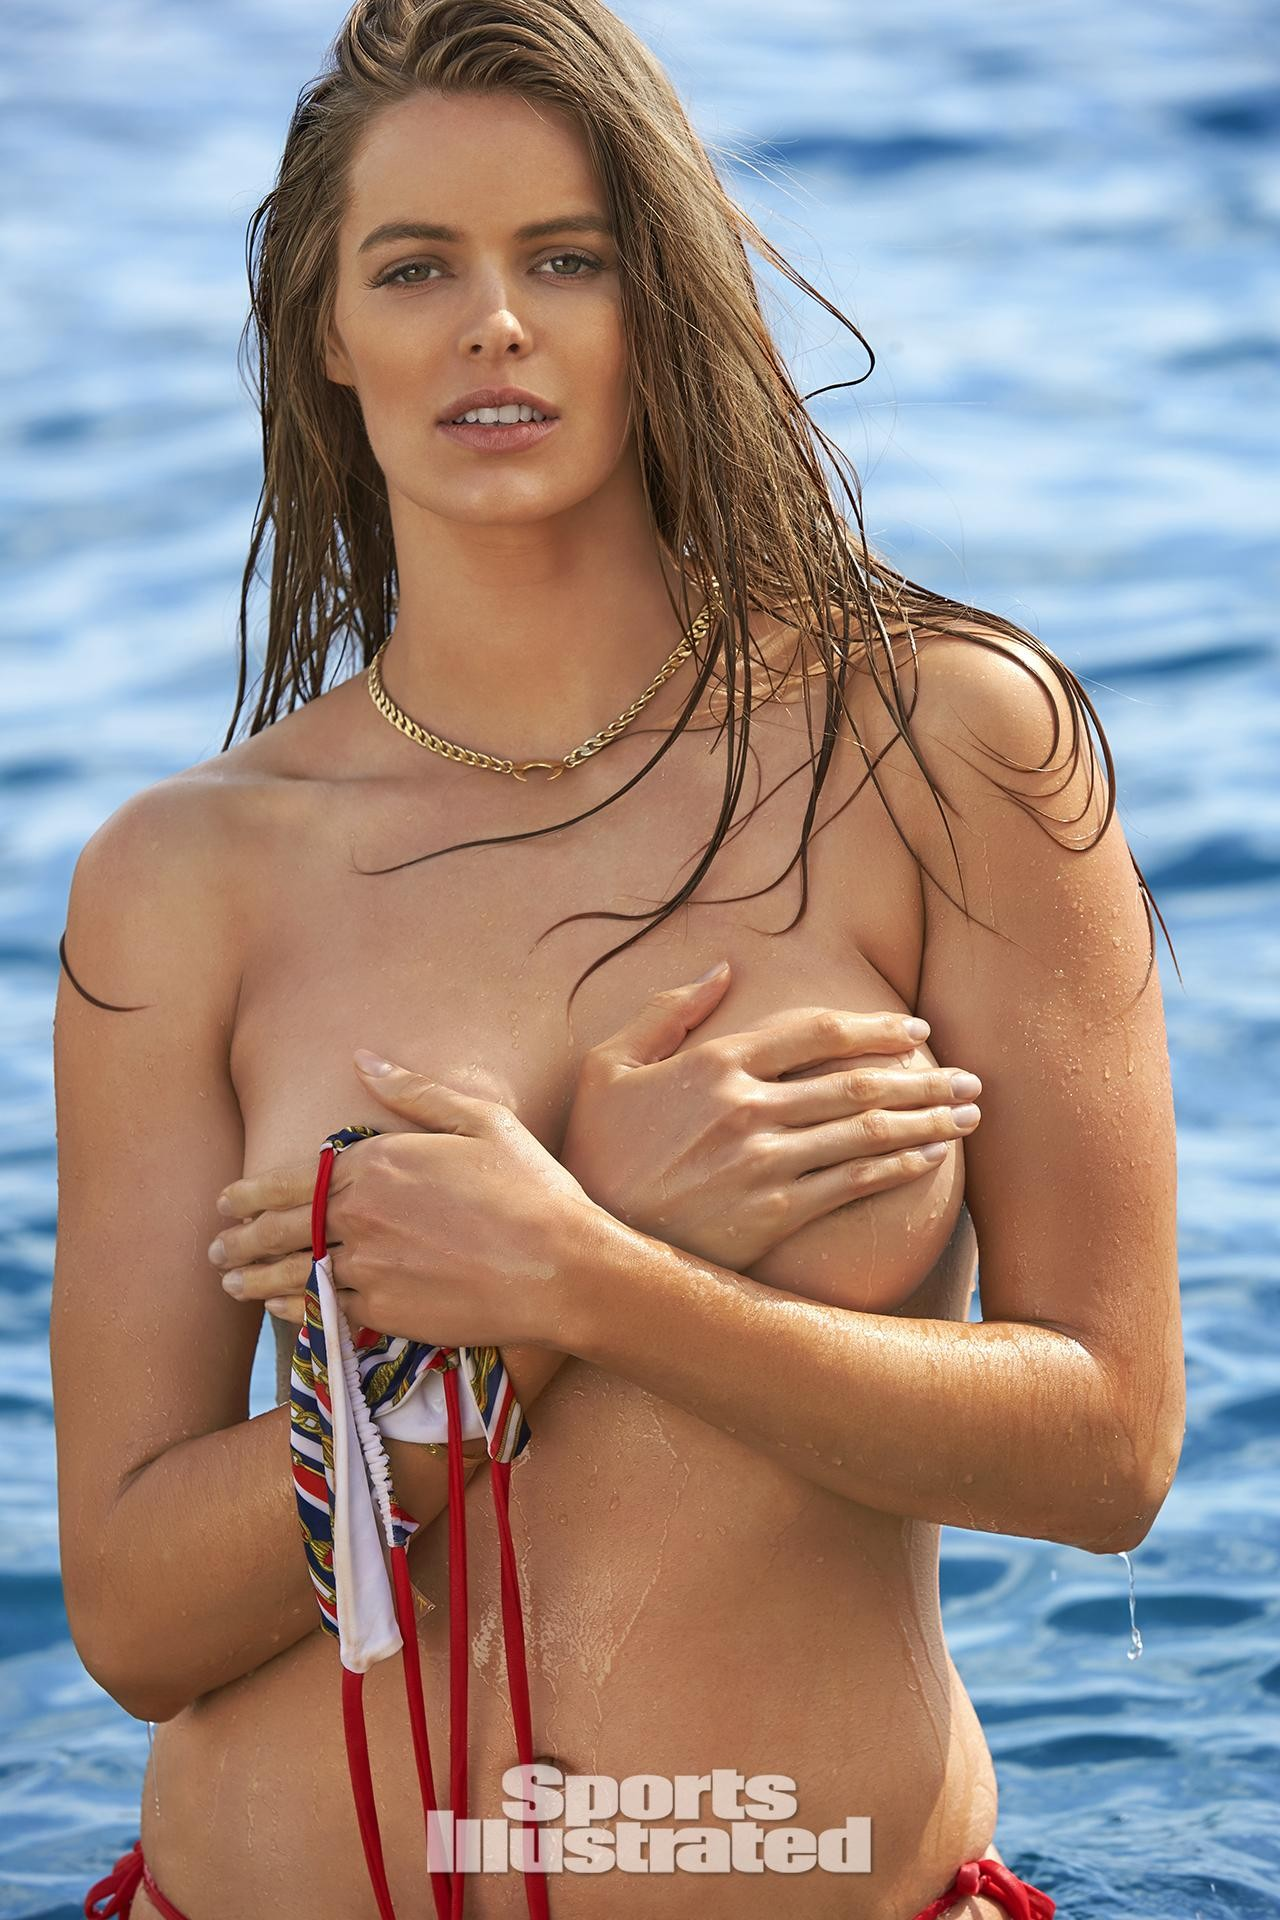 Topless Robyn Lawley nudes (18 photo), Pussy, Fappening, Boobs, butt 2018